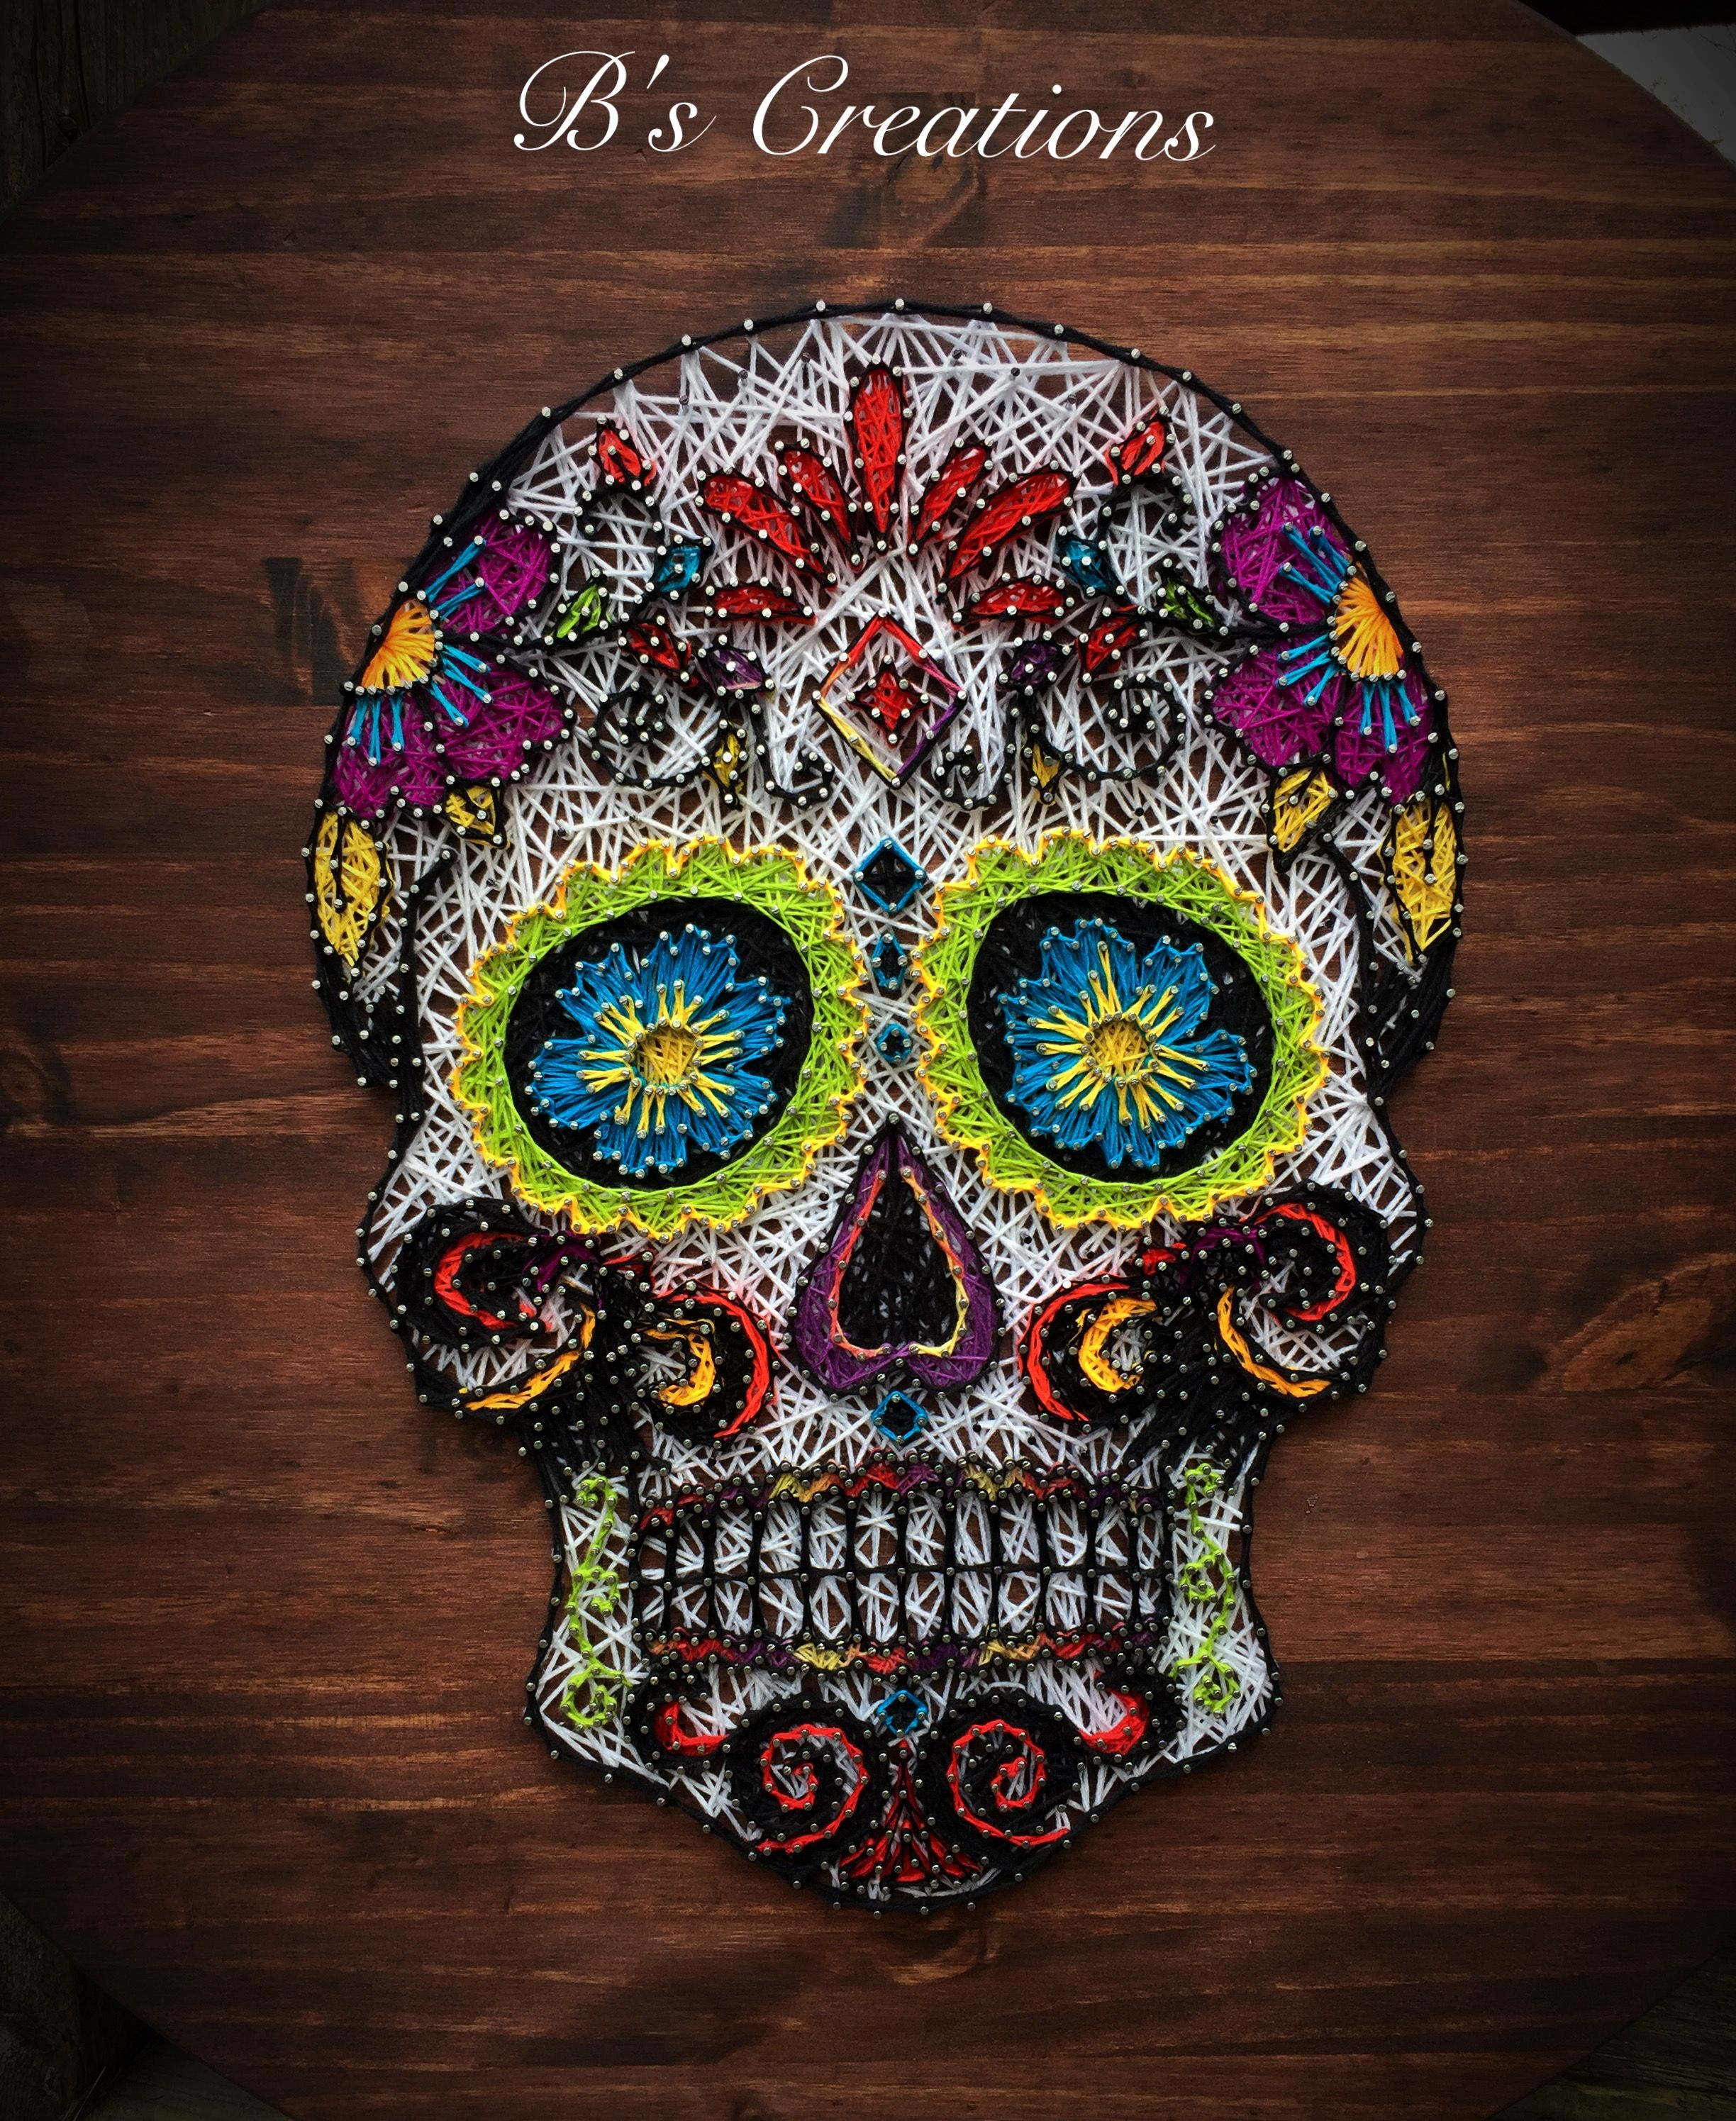 string art skull string art pinterest clous id e cadre et fil tendu. Black Bedroom Furniture Sets. Home Design Ideas